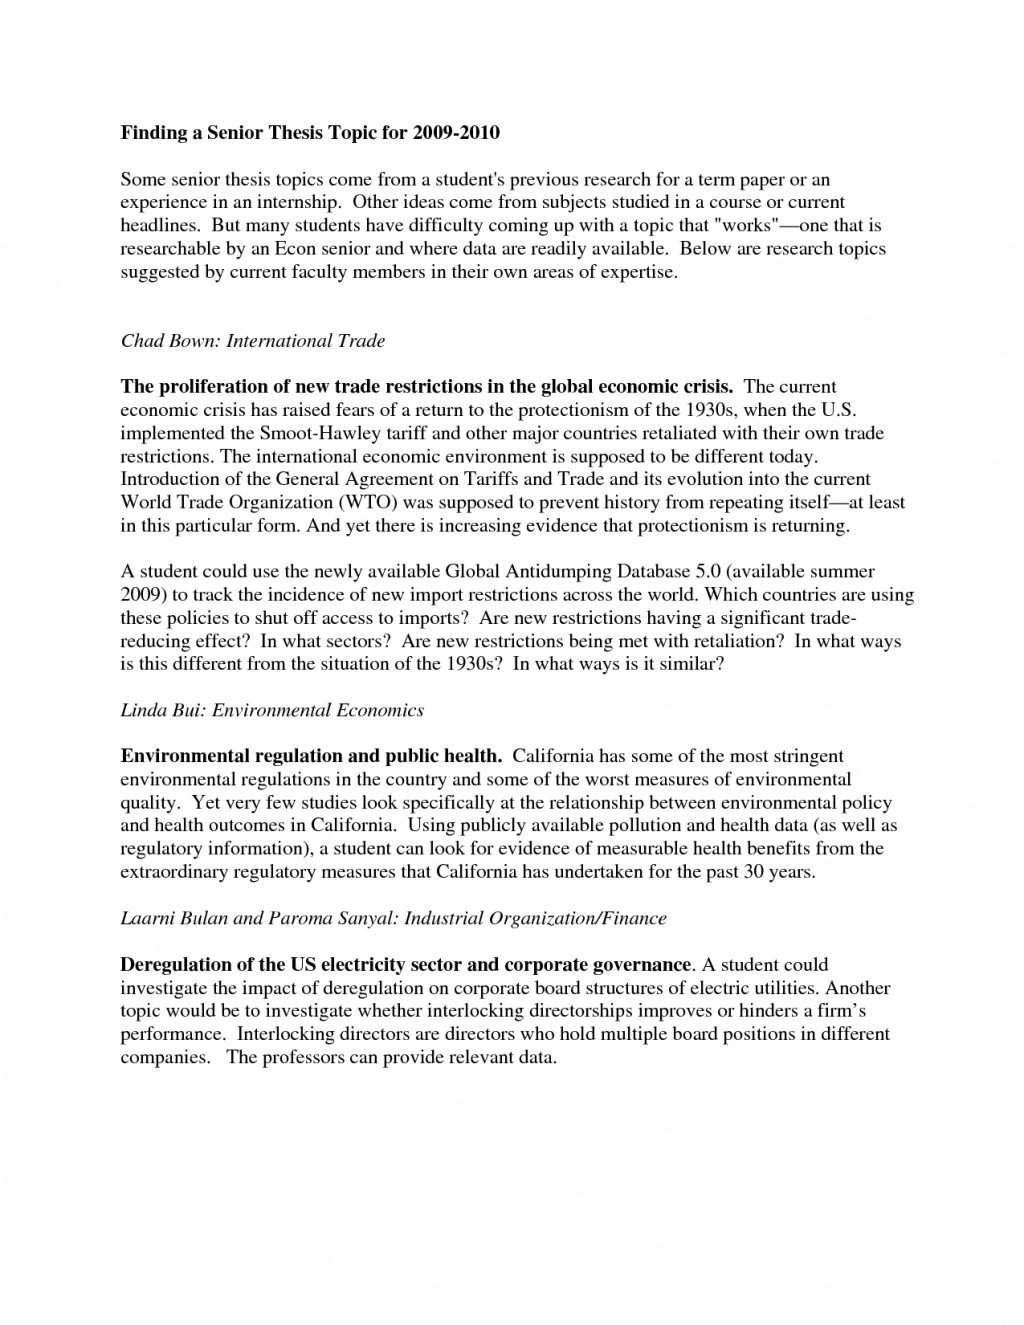 007 Interesting Topics For Research Paper High School Frightening A Students Argumentative Large